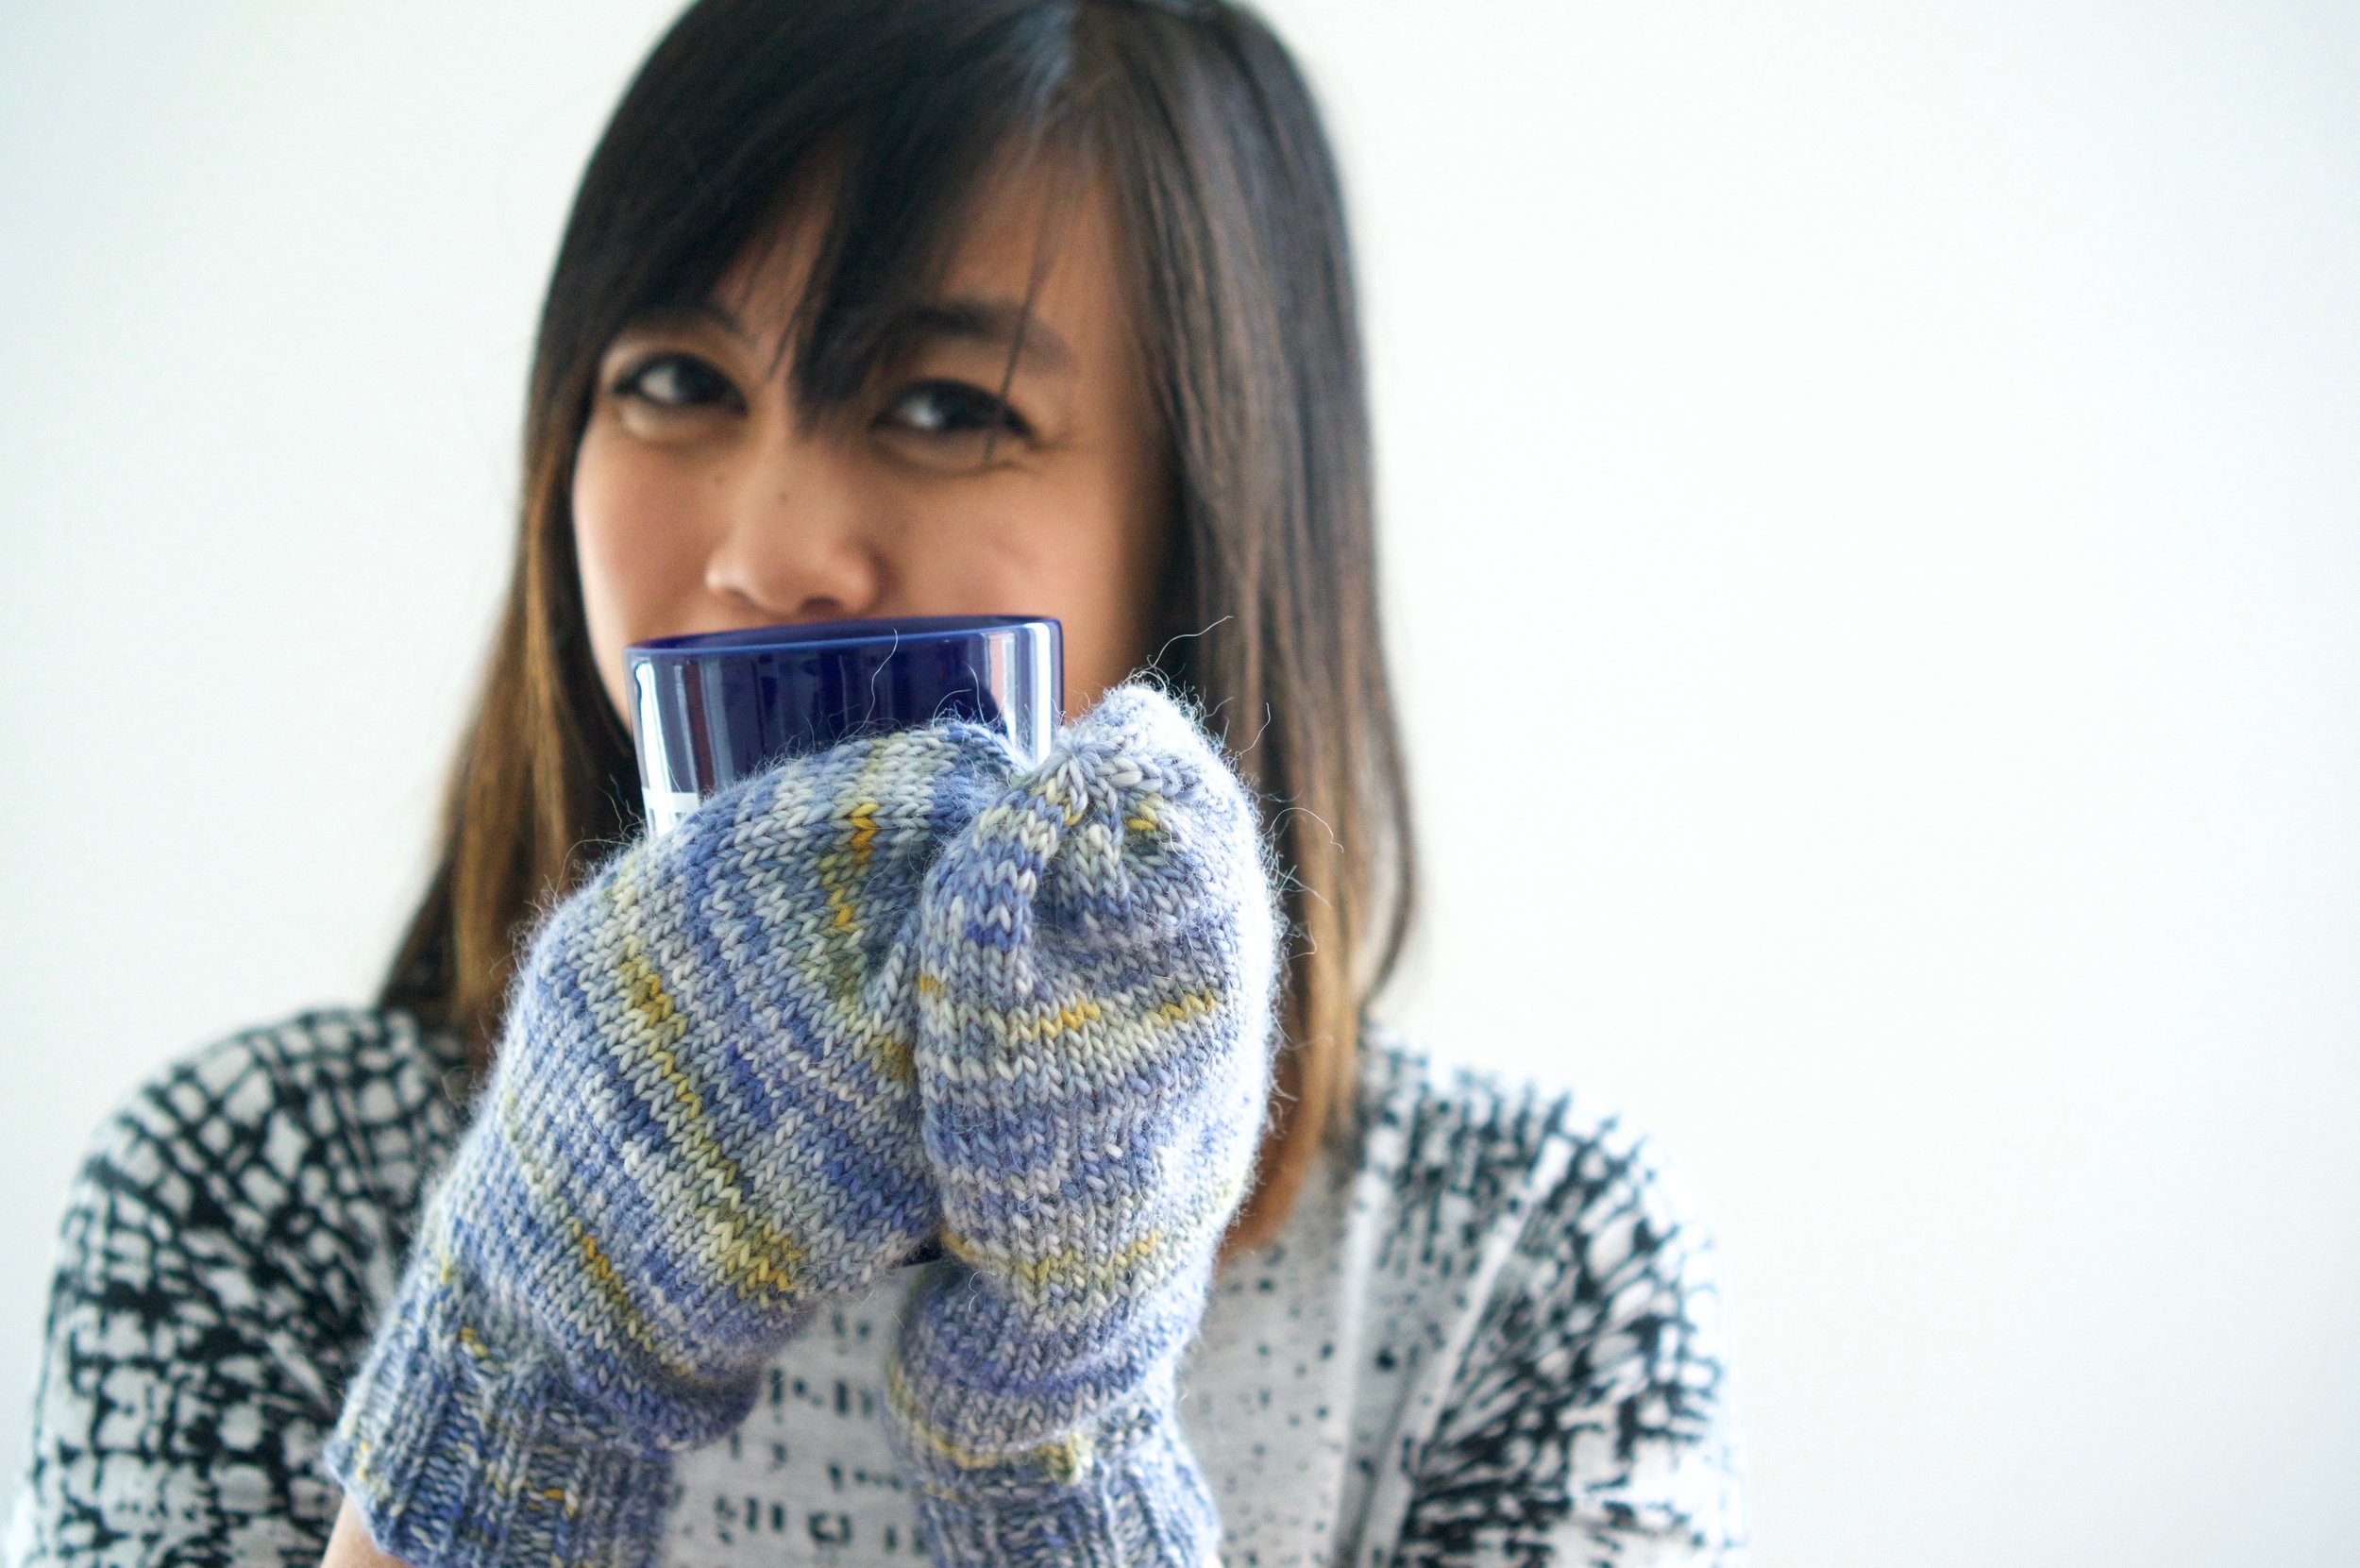 Starry Starry Mitts - $6.99